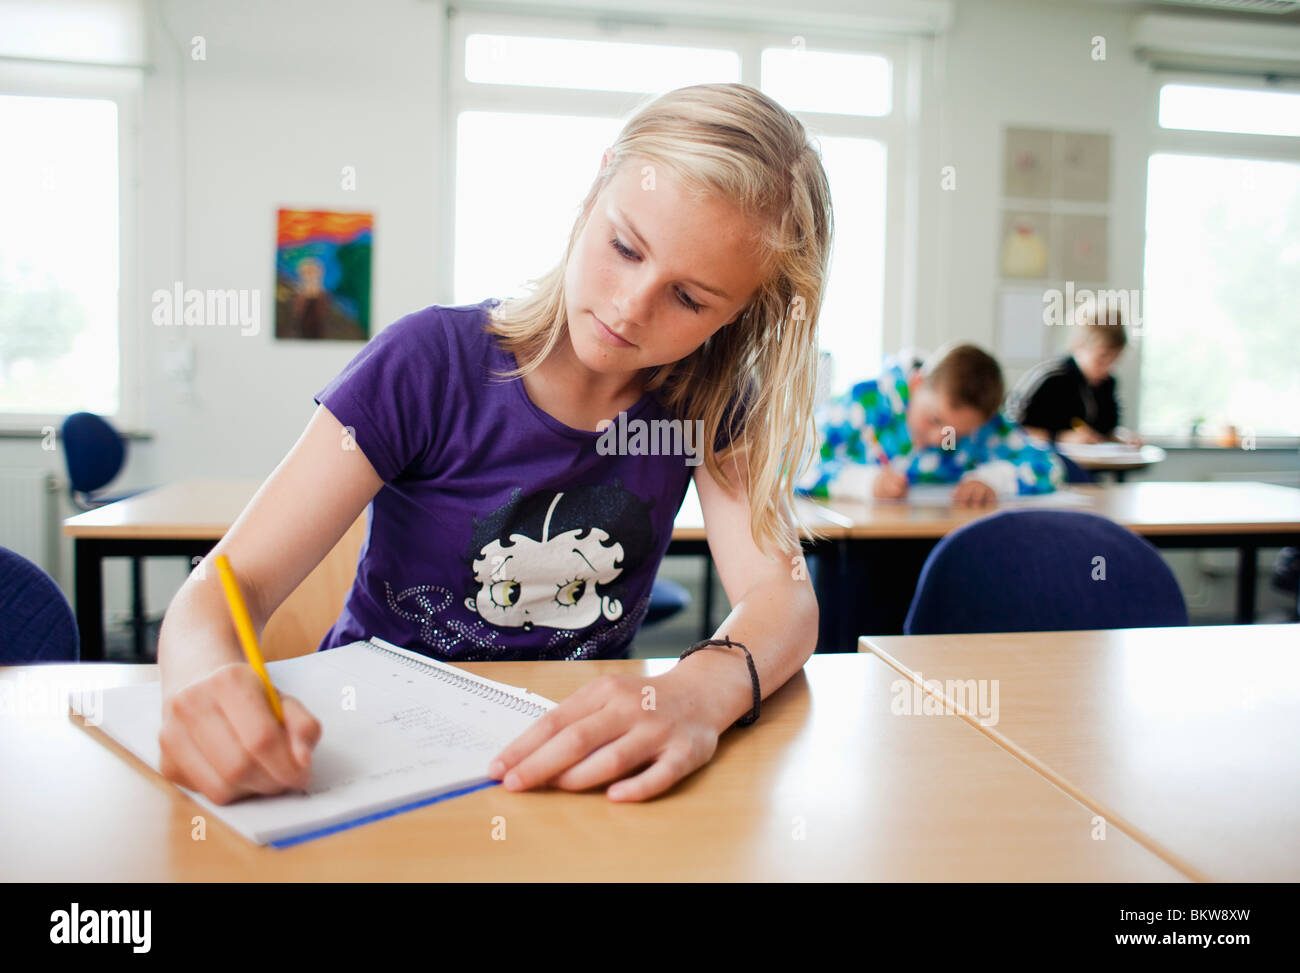 Concentrated girl writing - Stock Image